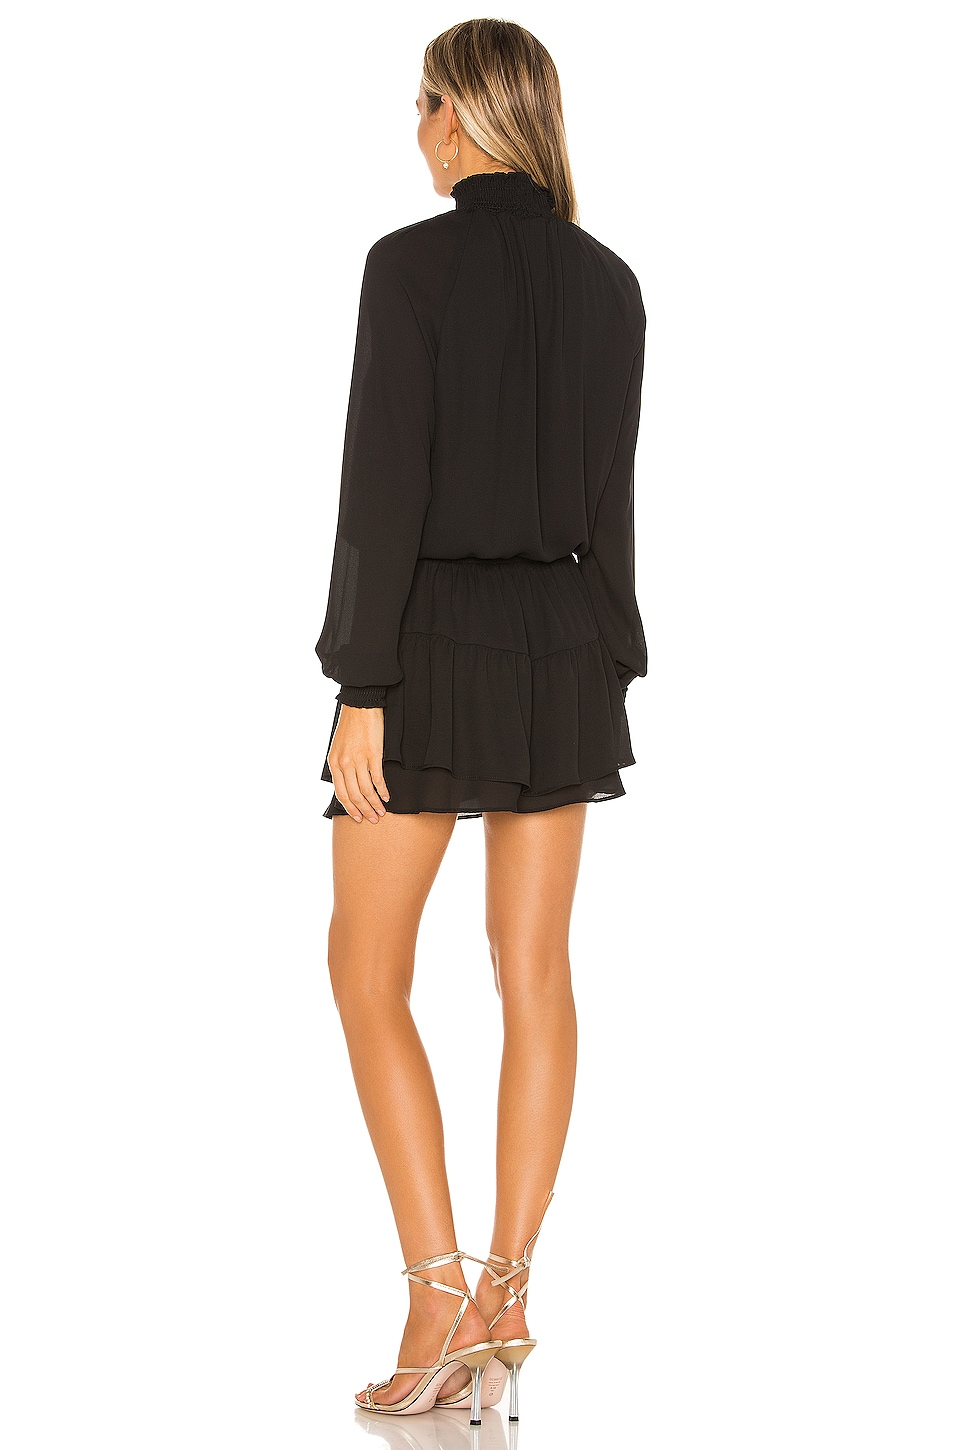 X REVOLVE Smocked Turtleneck Dress, view 3, click to view large image.